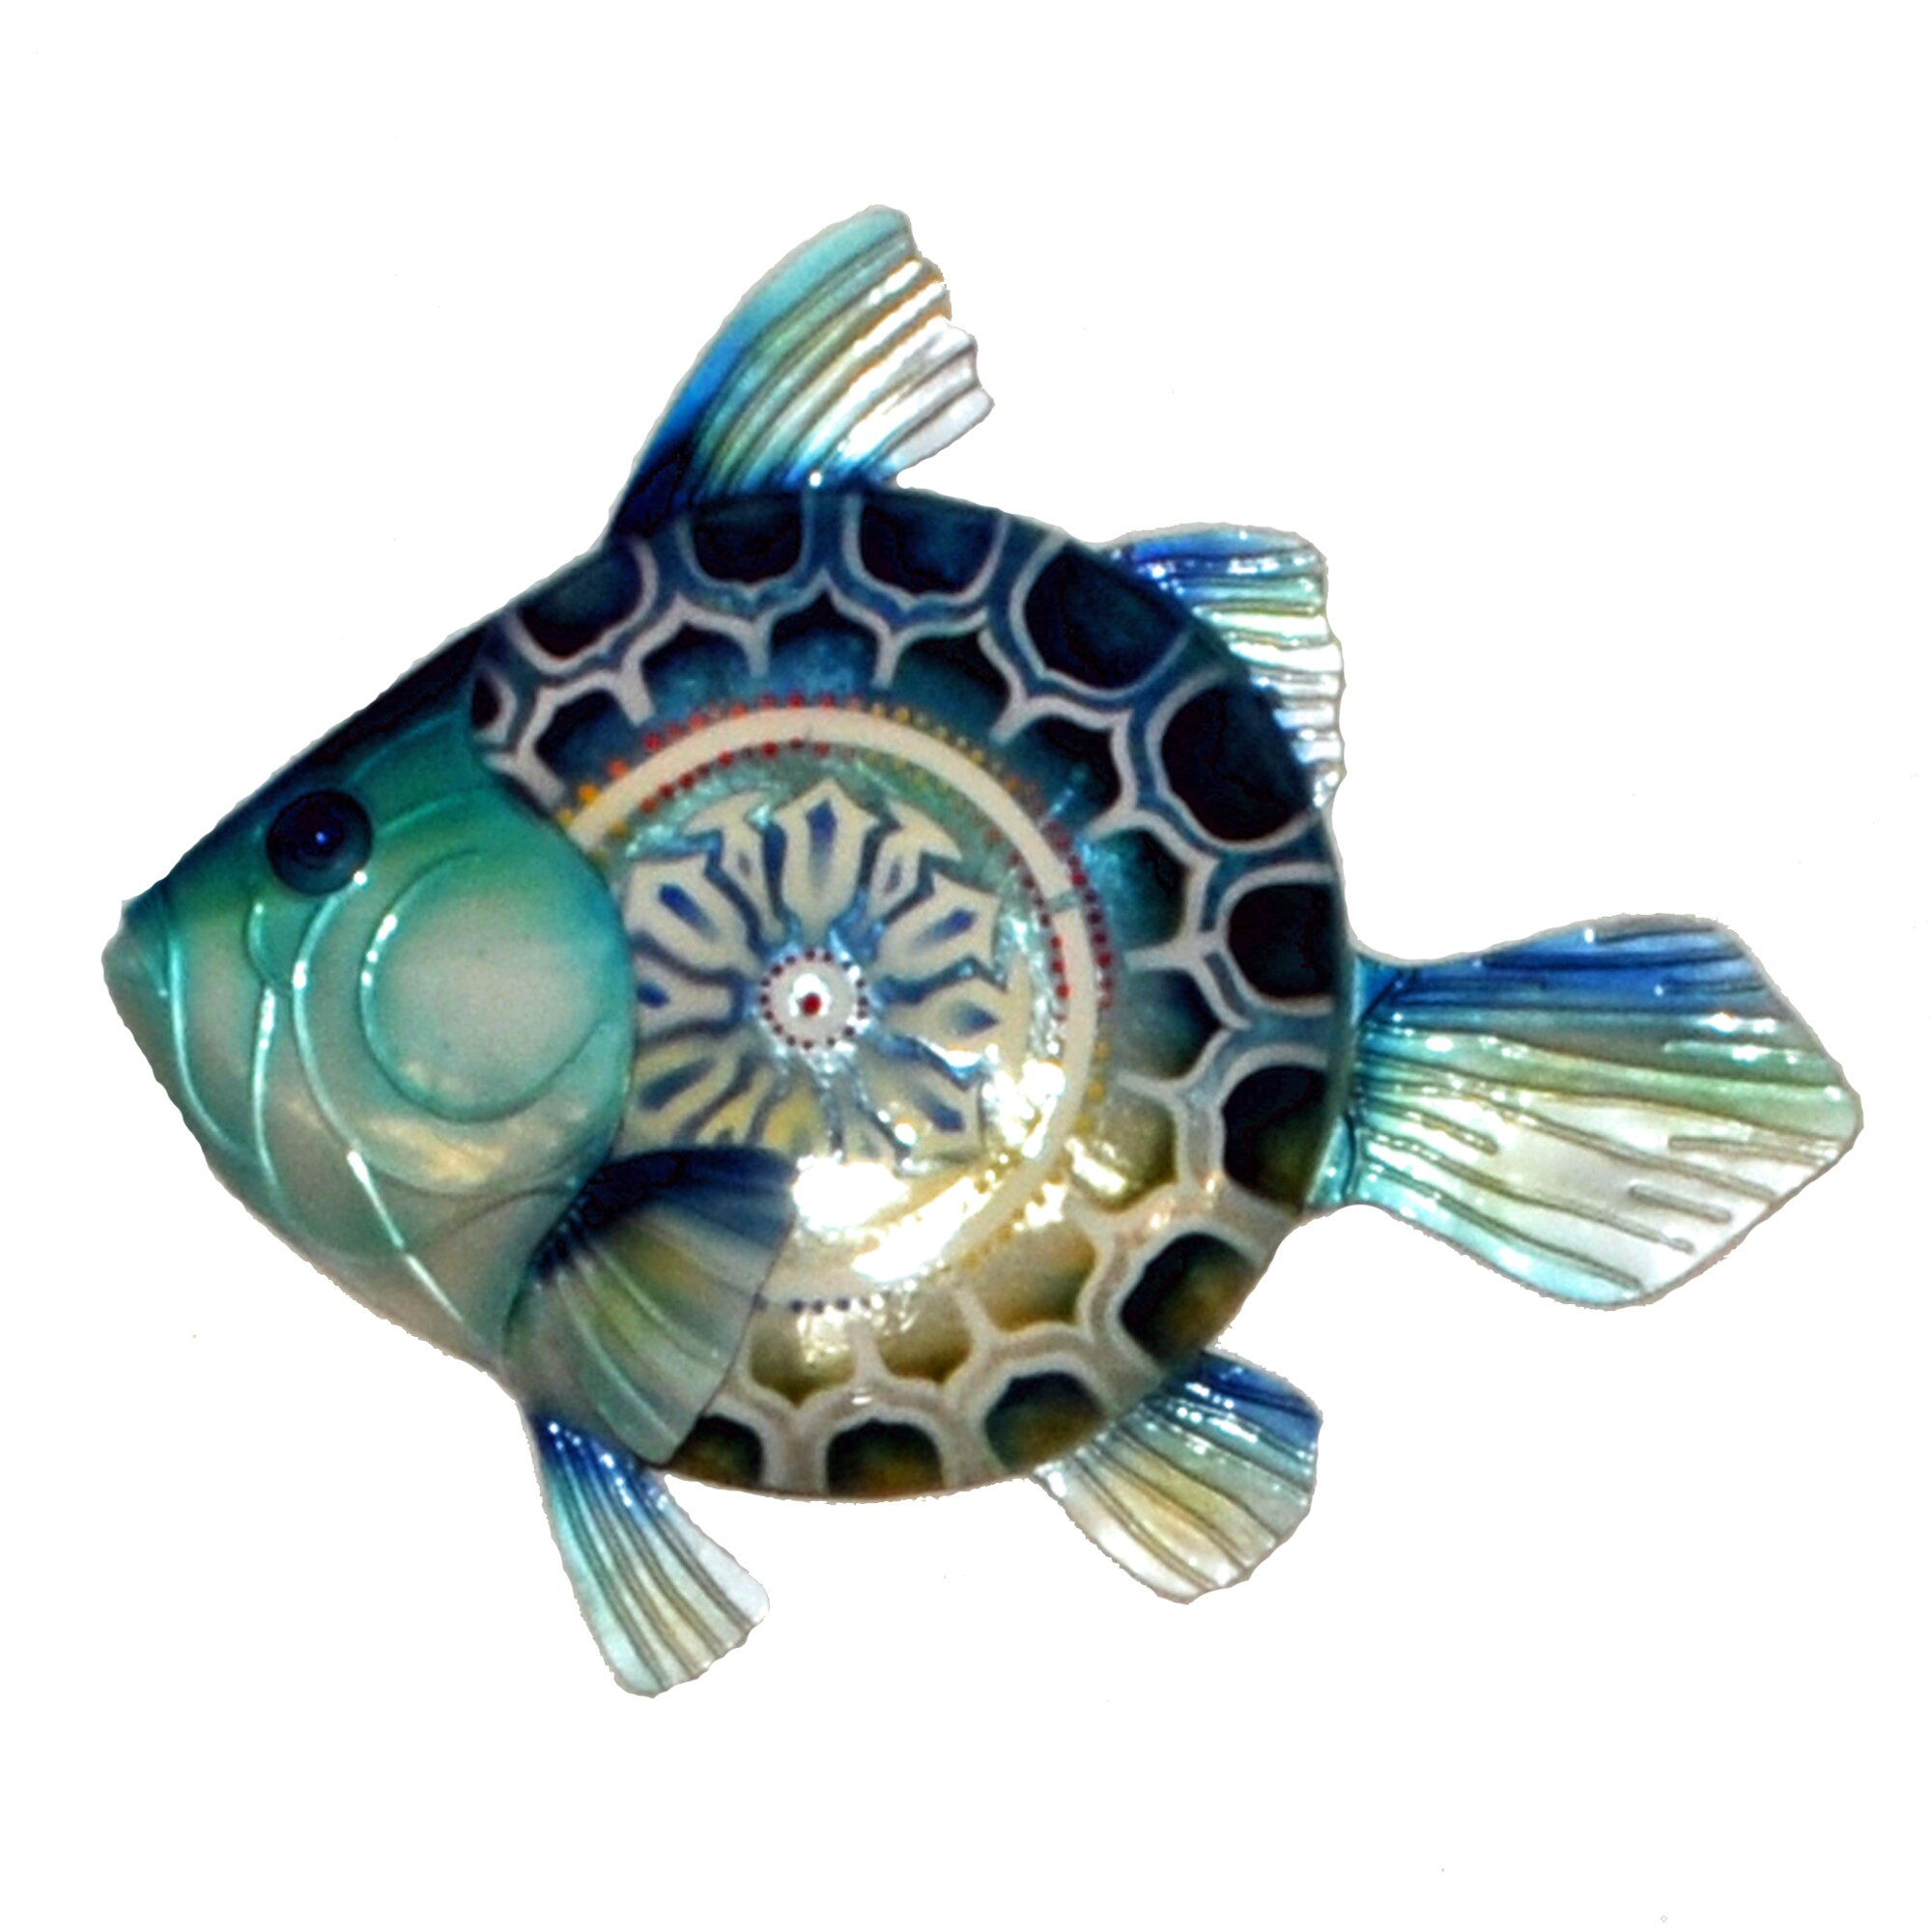 Fish wall decor wayfair for Fish wall decor